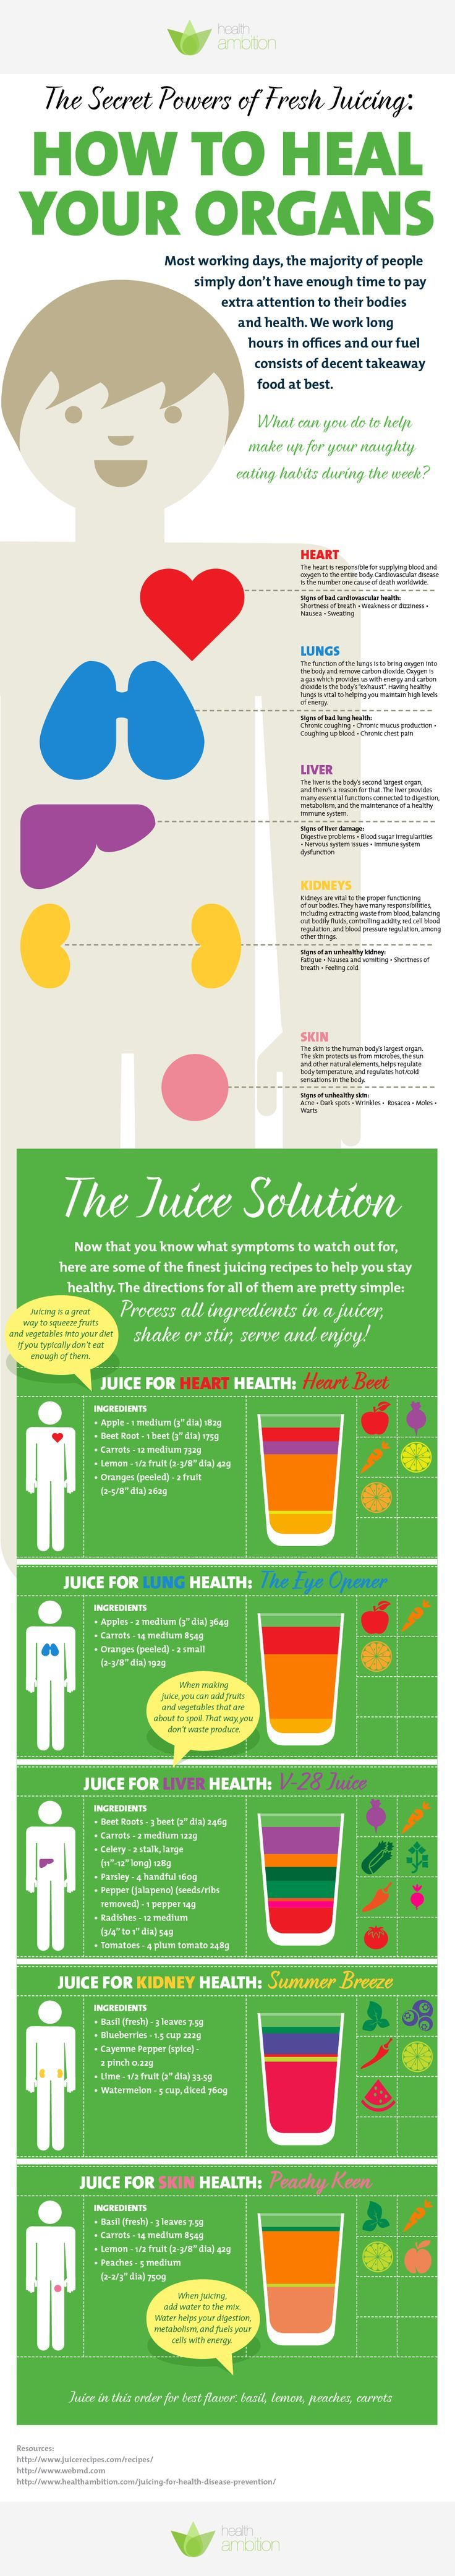 are frozen fruits as healthy as fresh healthy juicing recipes with fruits and vegetables